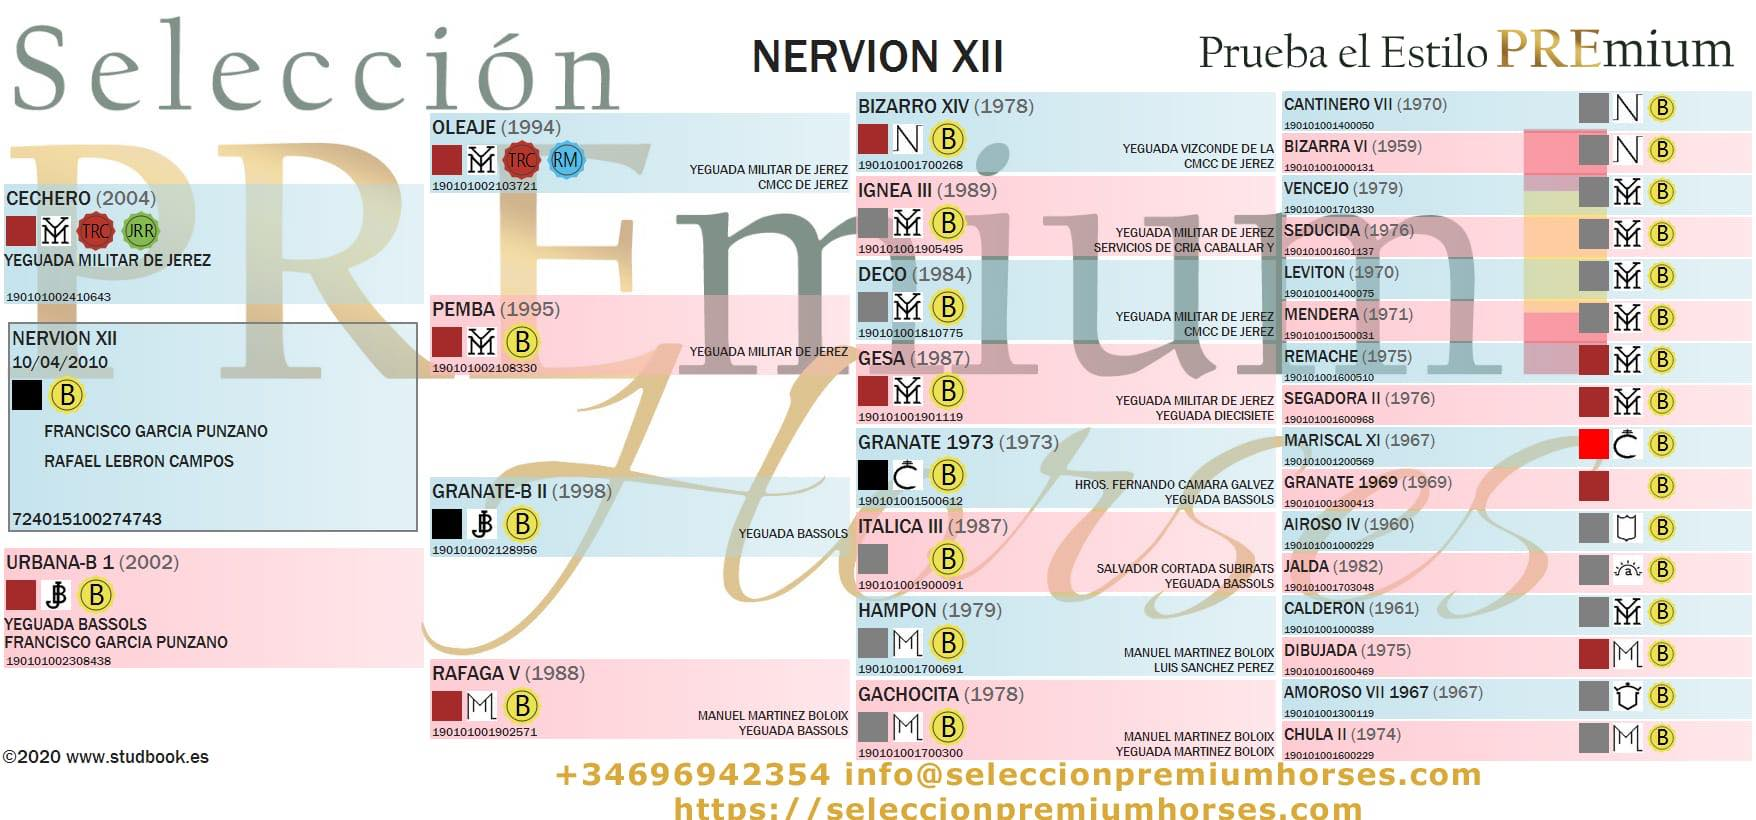 Origines Nervion